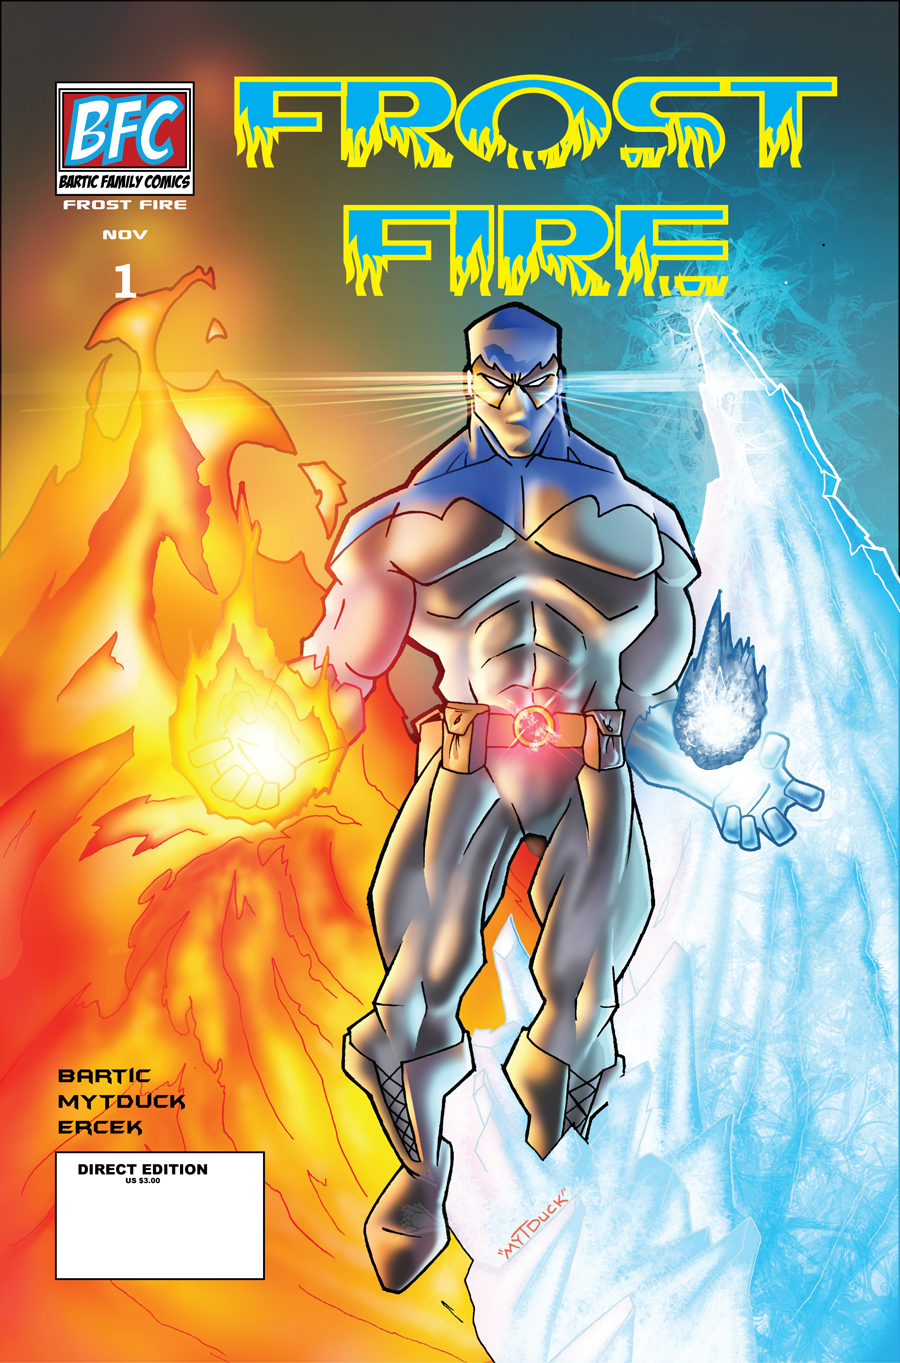 Frost Fire Issue 1 Cover